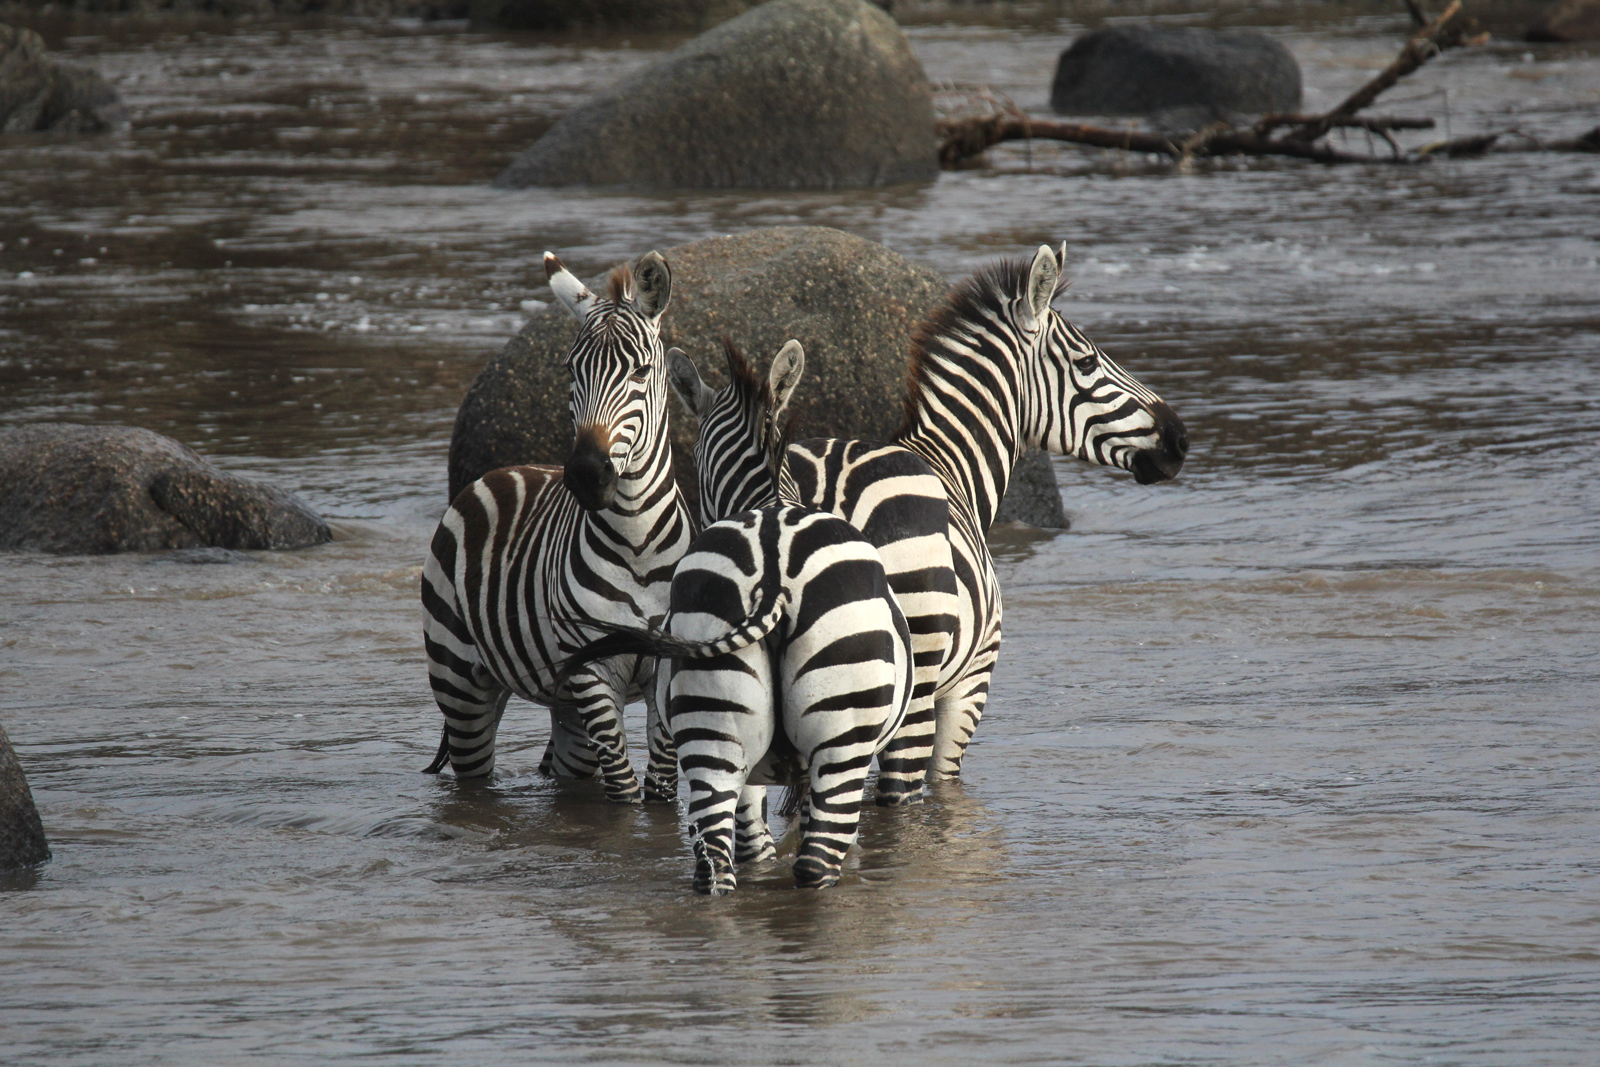 Three zebras standing in the river